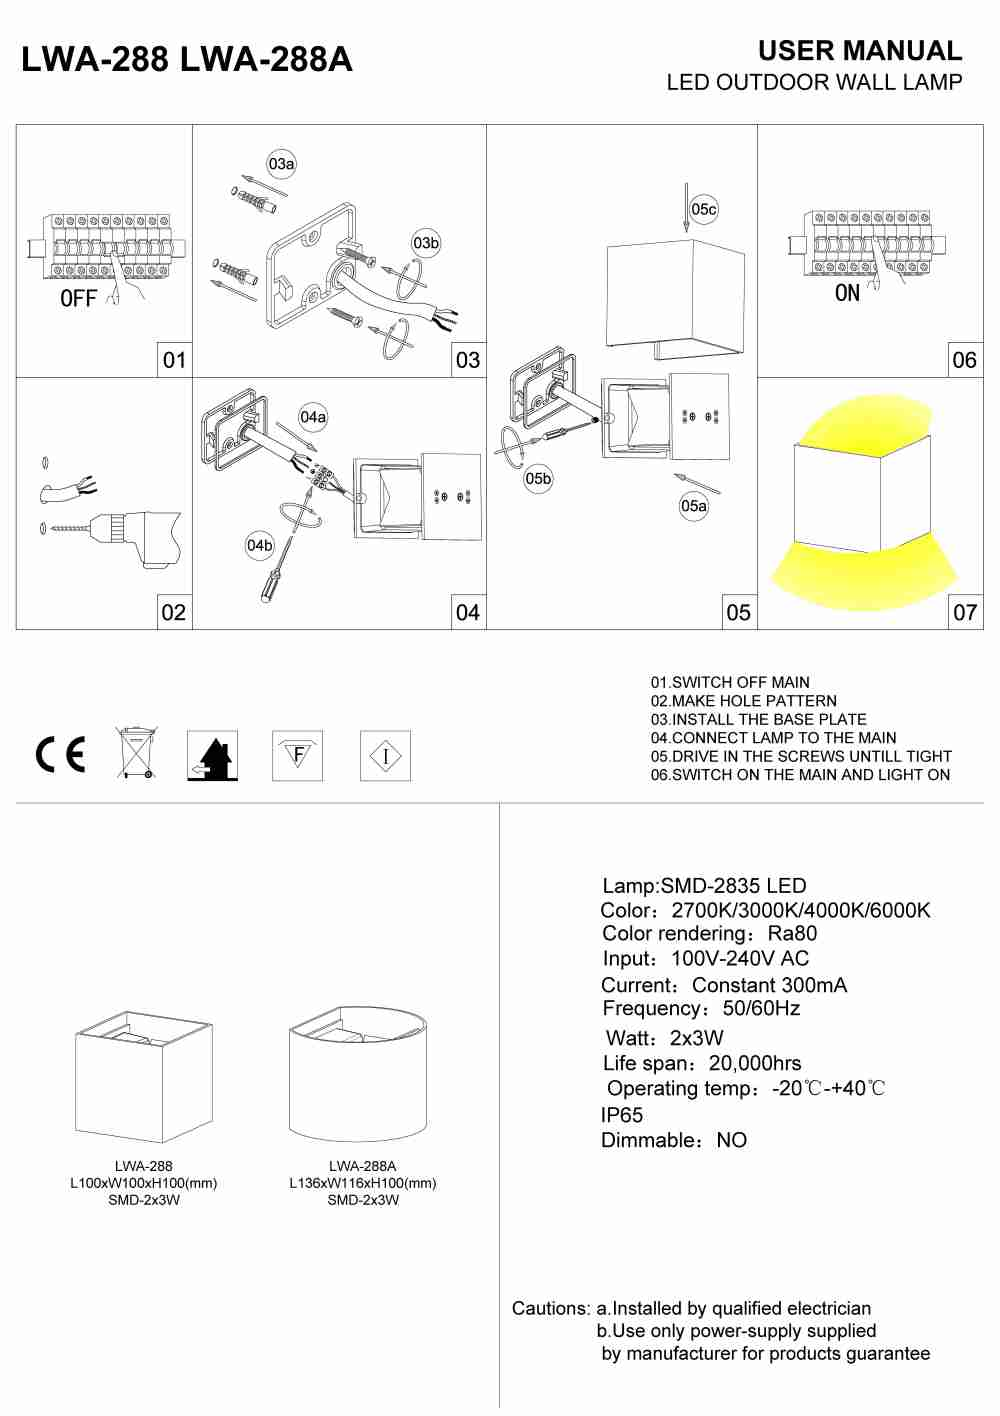 LWA-288 LWA-288A - Black round outdoor wall light installation guide